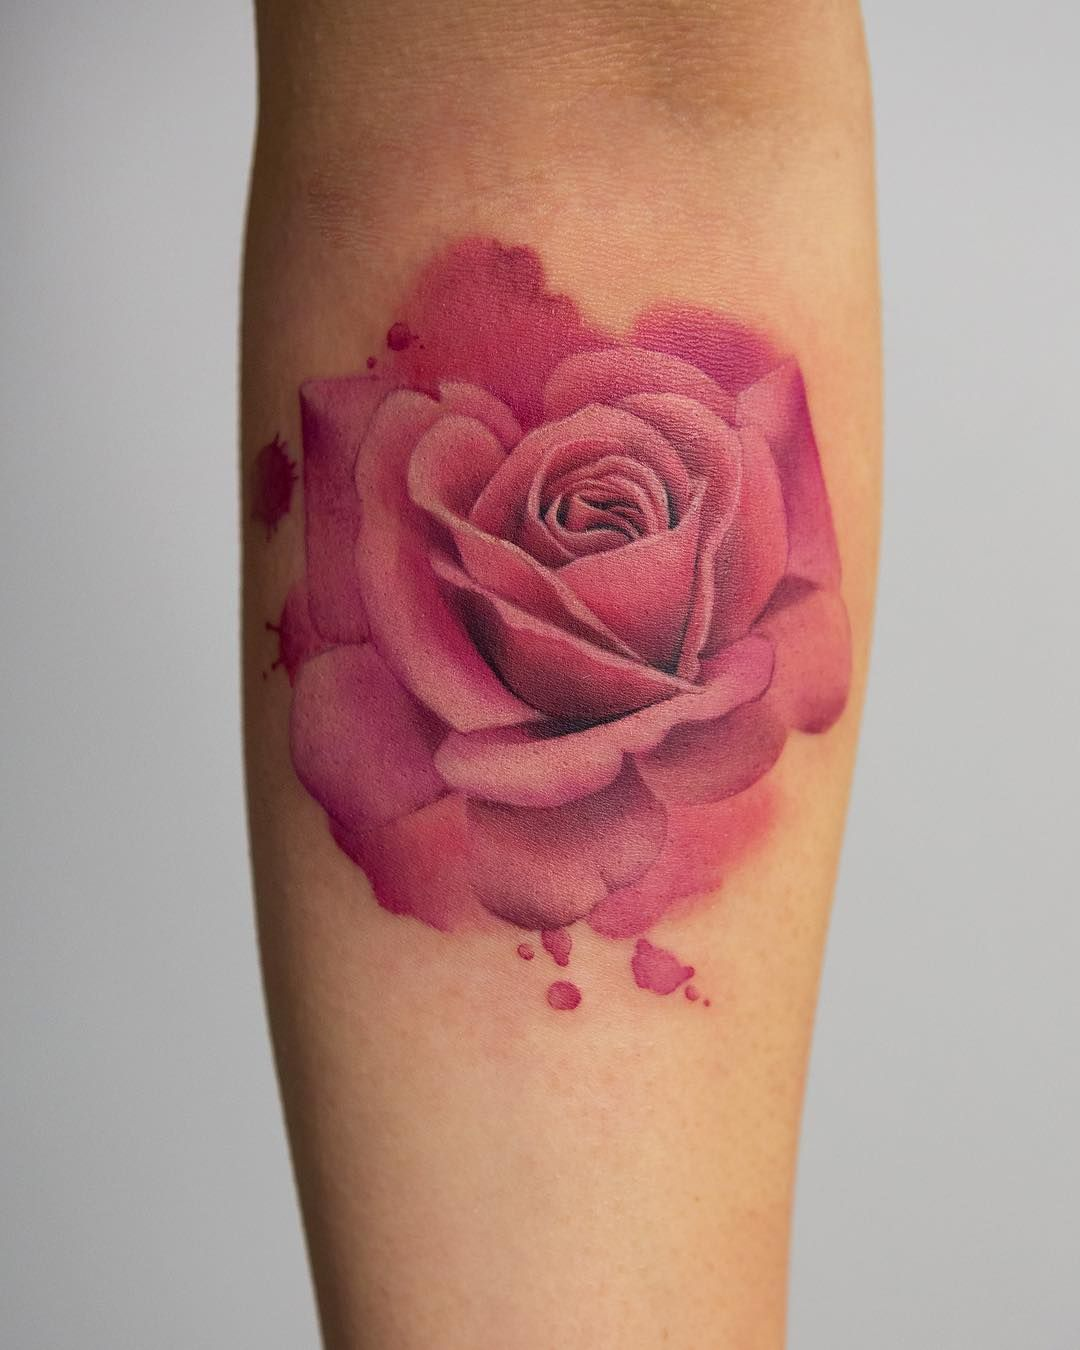 Tattoos for men family feed your ink addiction with  of the most beautiful rose tattoo